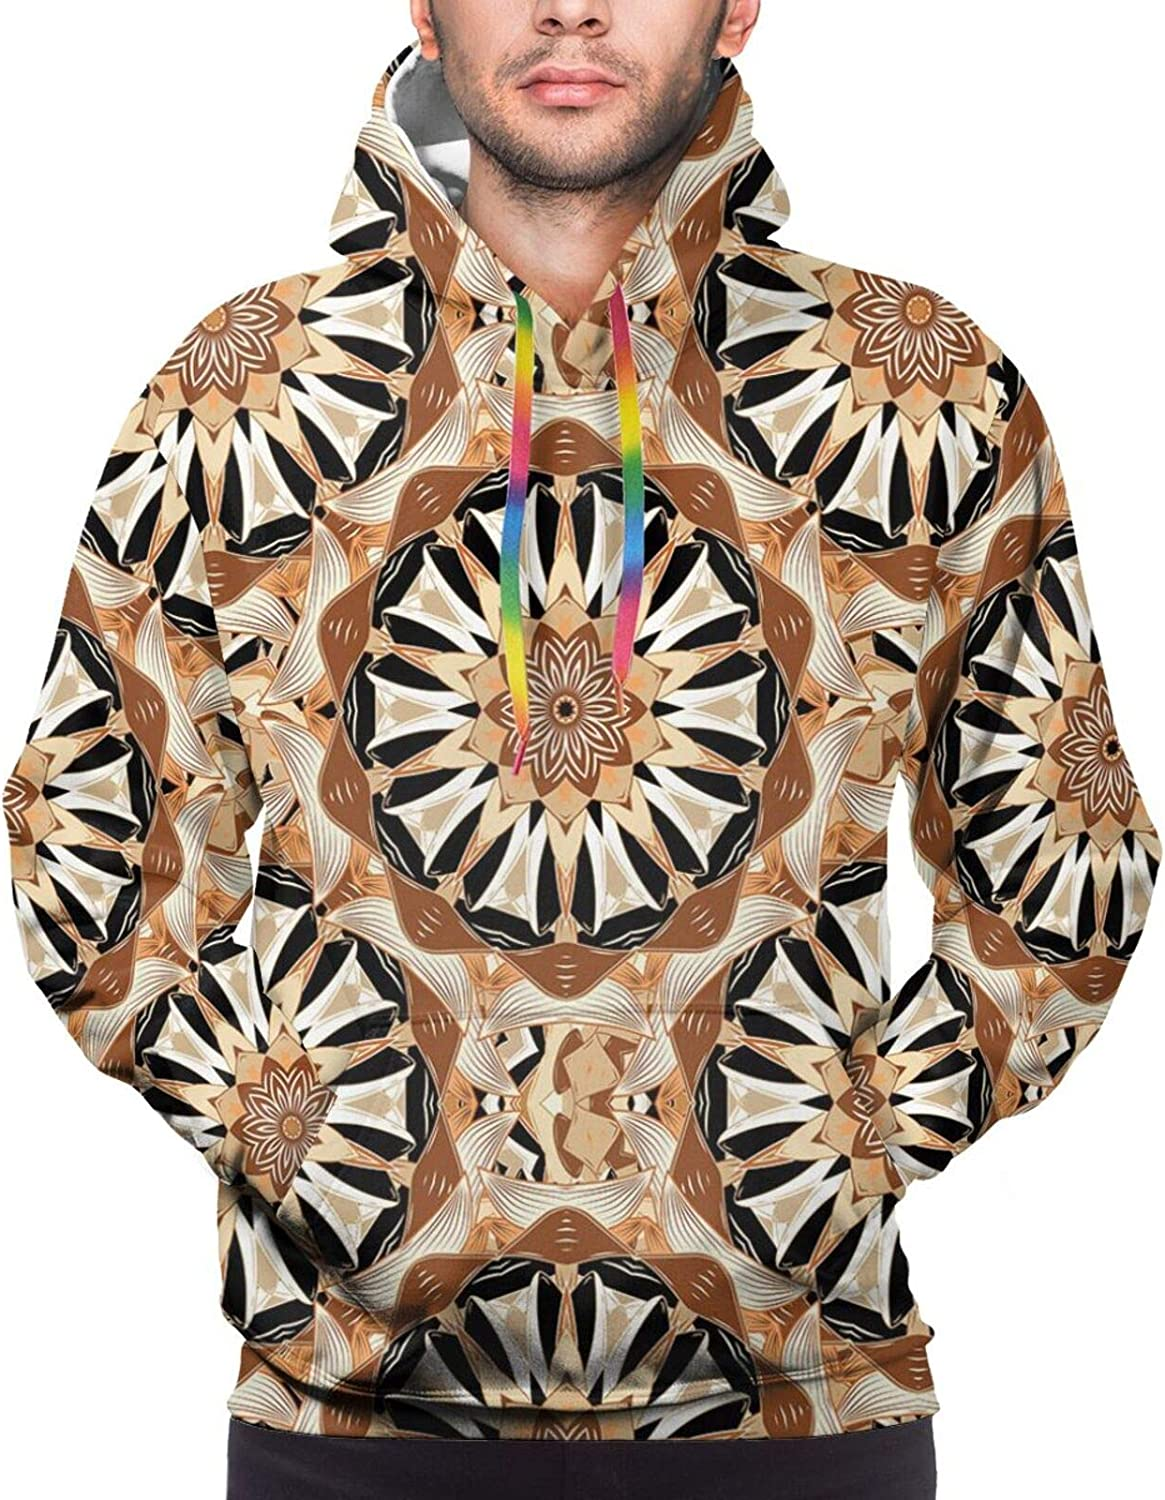 Men's Hoodies Sweatshirts,Oriental Style Continuous Forest Pattern with Stylized Branches Leaves and Birds